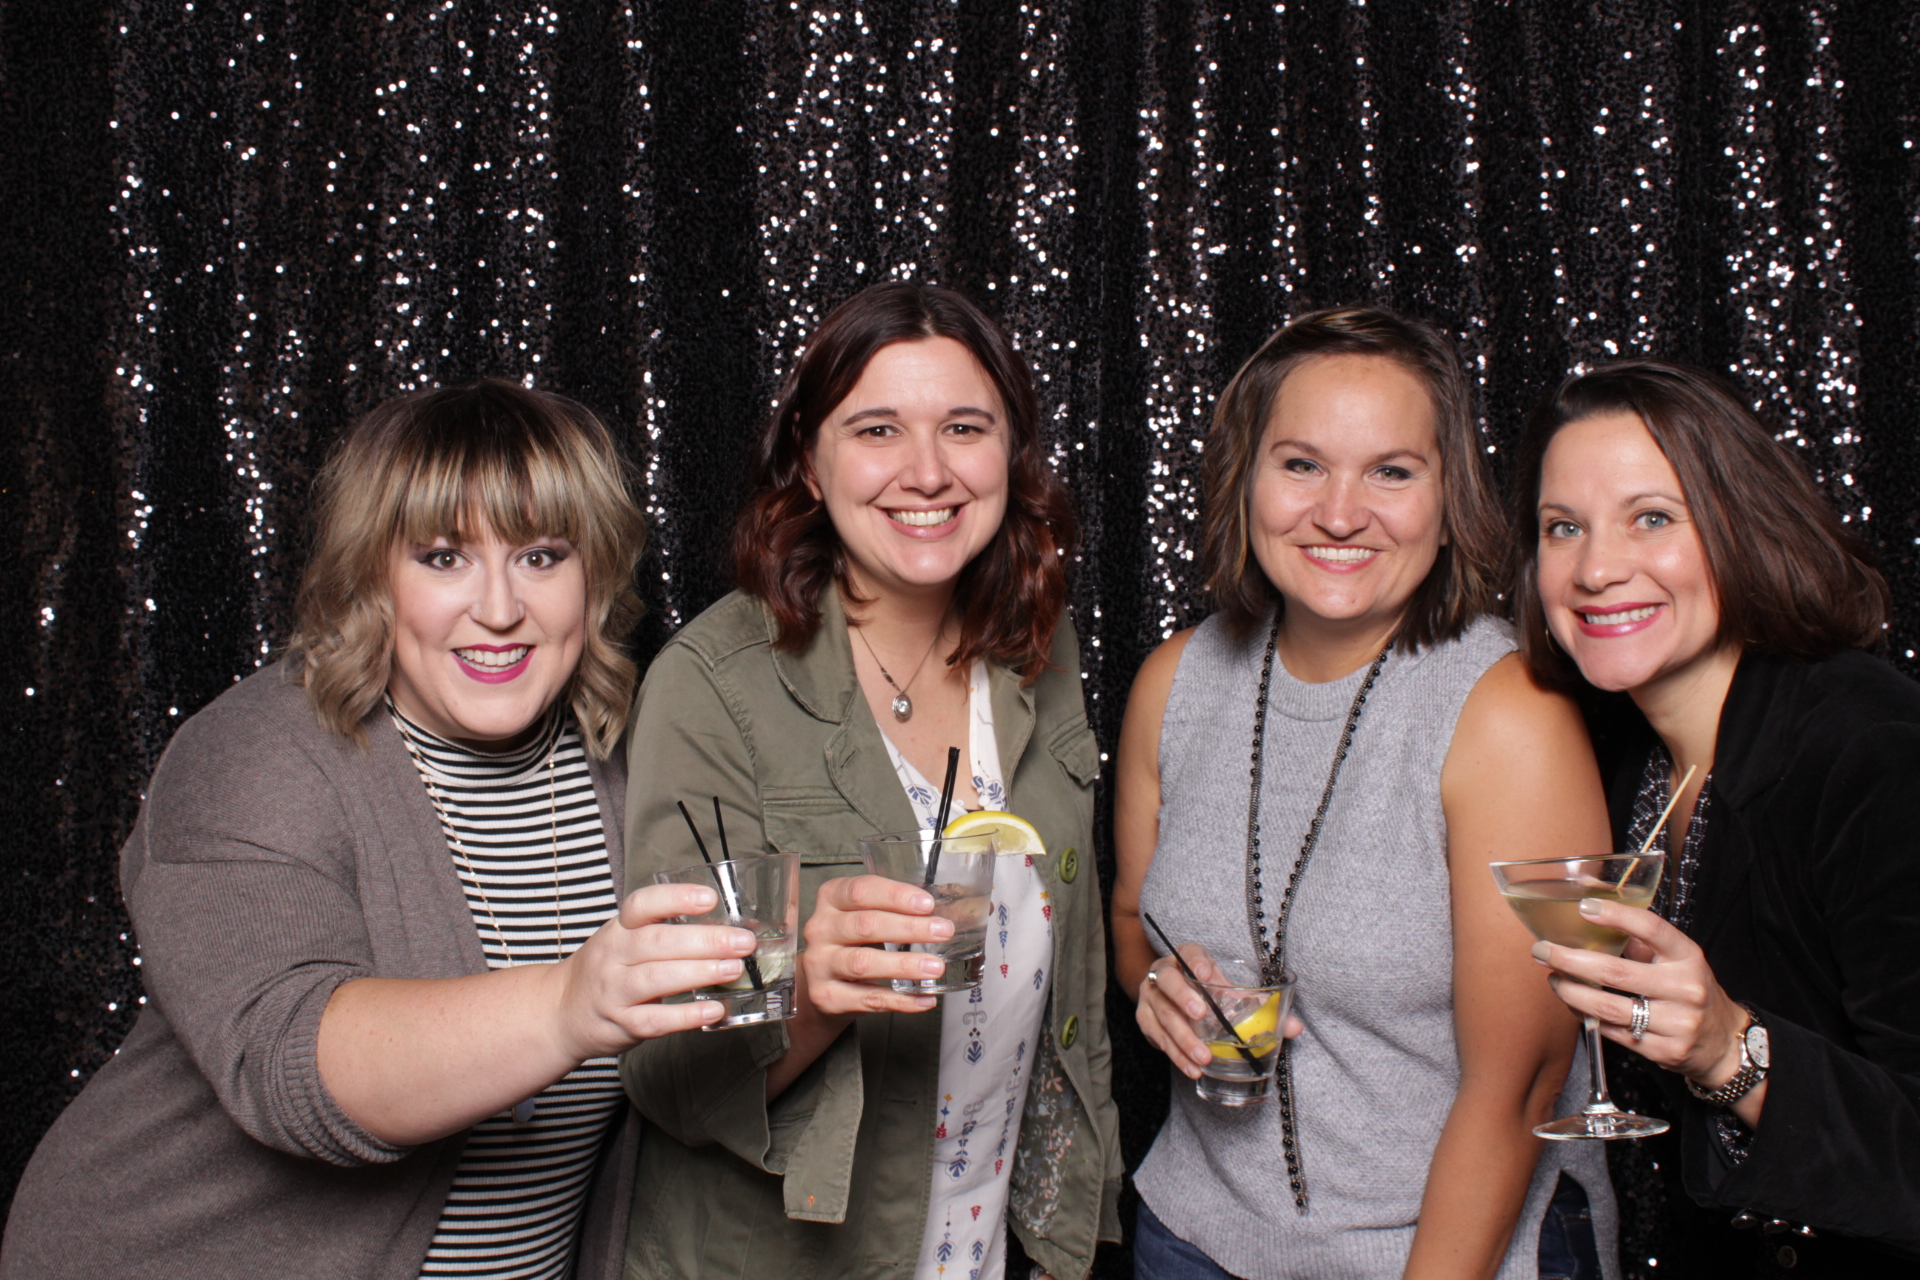 Minneapolis_birthday_party_photo_booth_rentals.jpg